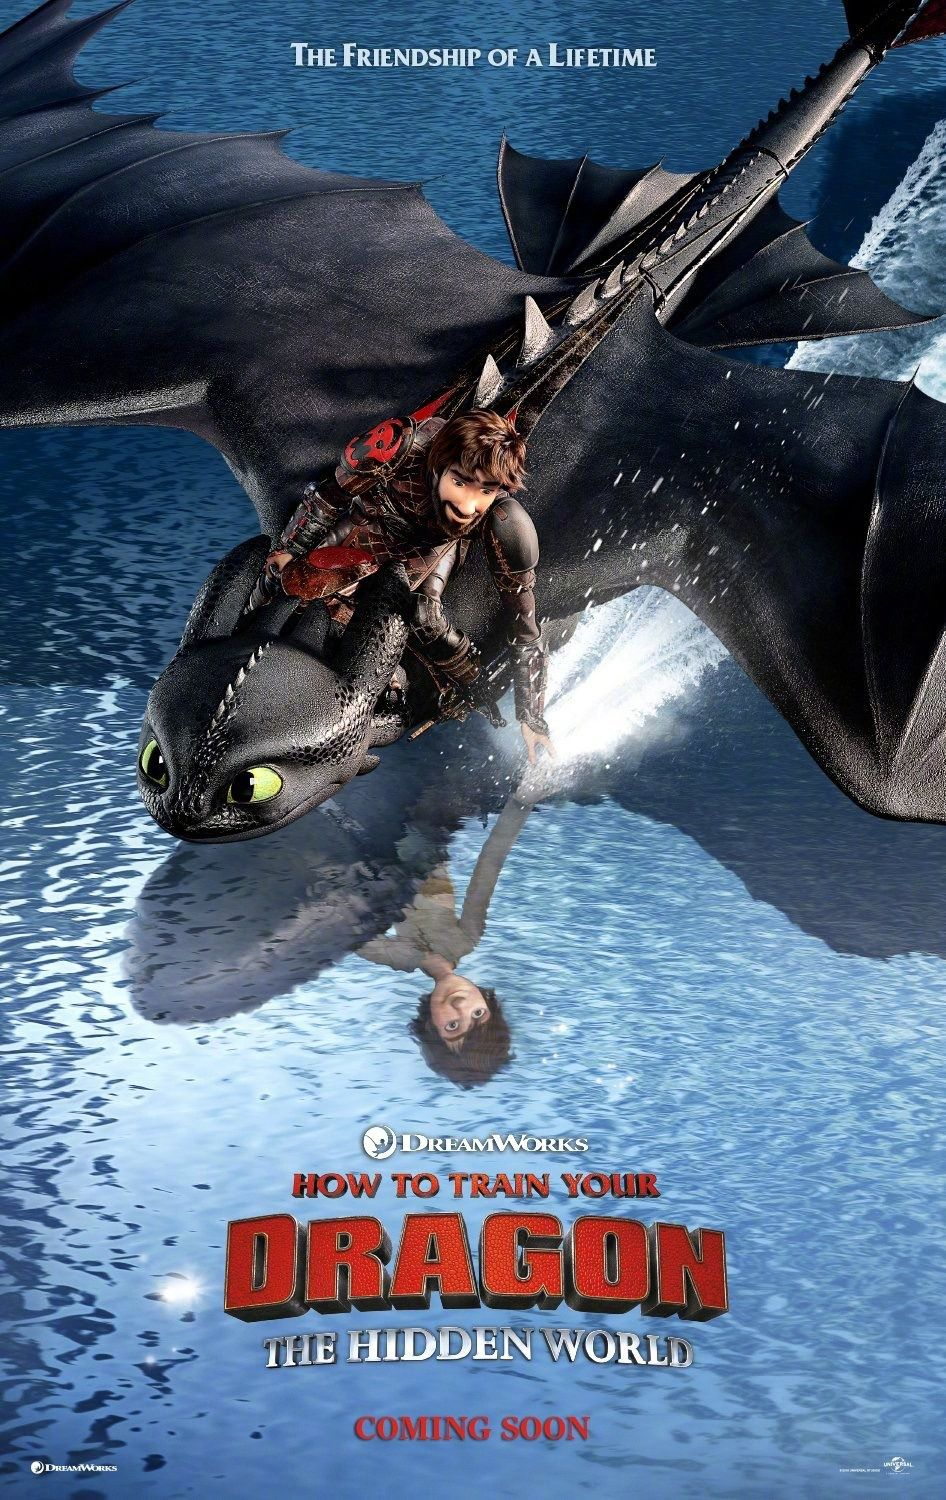 Dragon Trainer 3 - How to Train Your Dragon the Hidden World (2019)